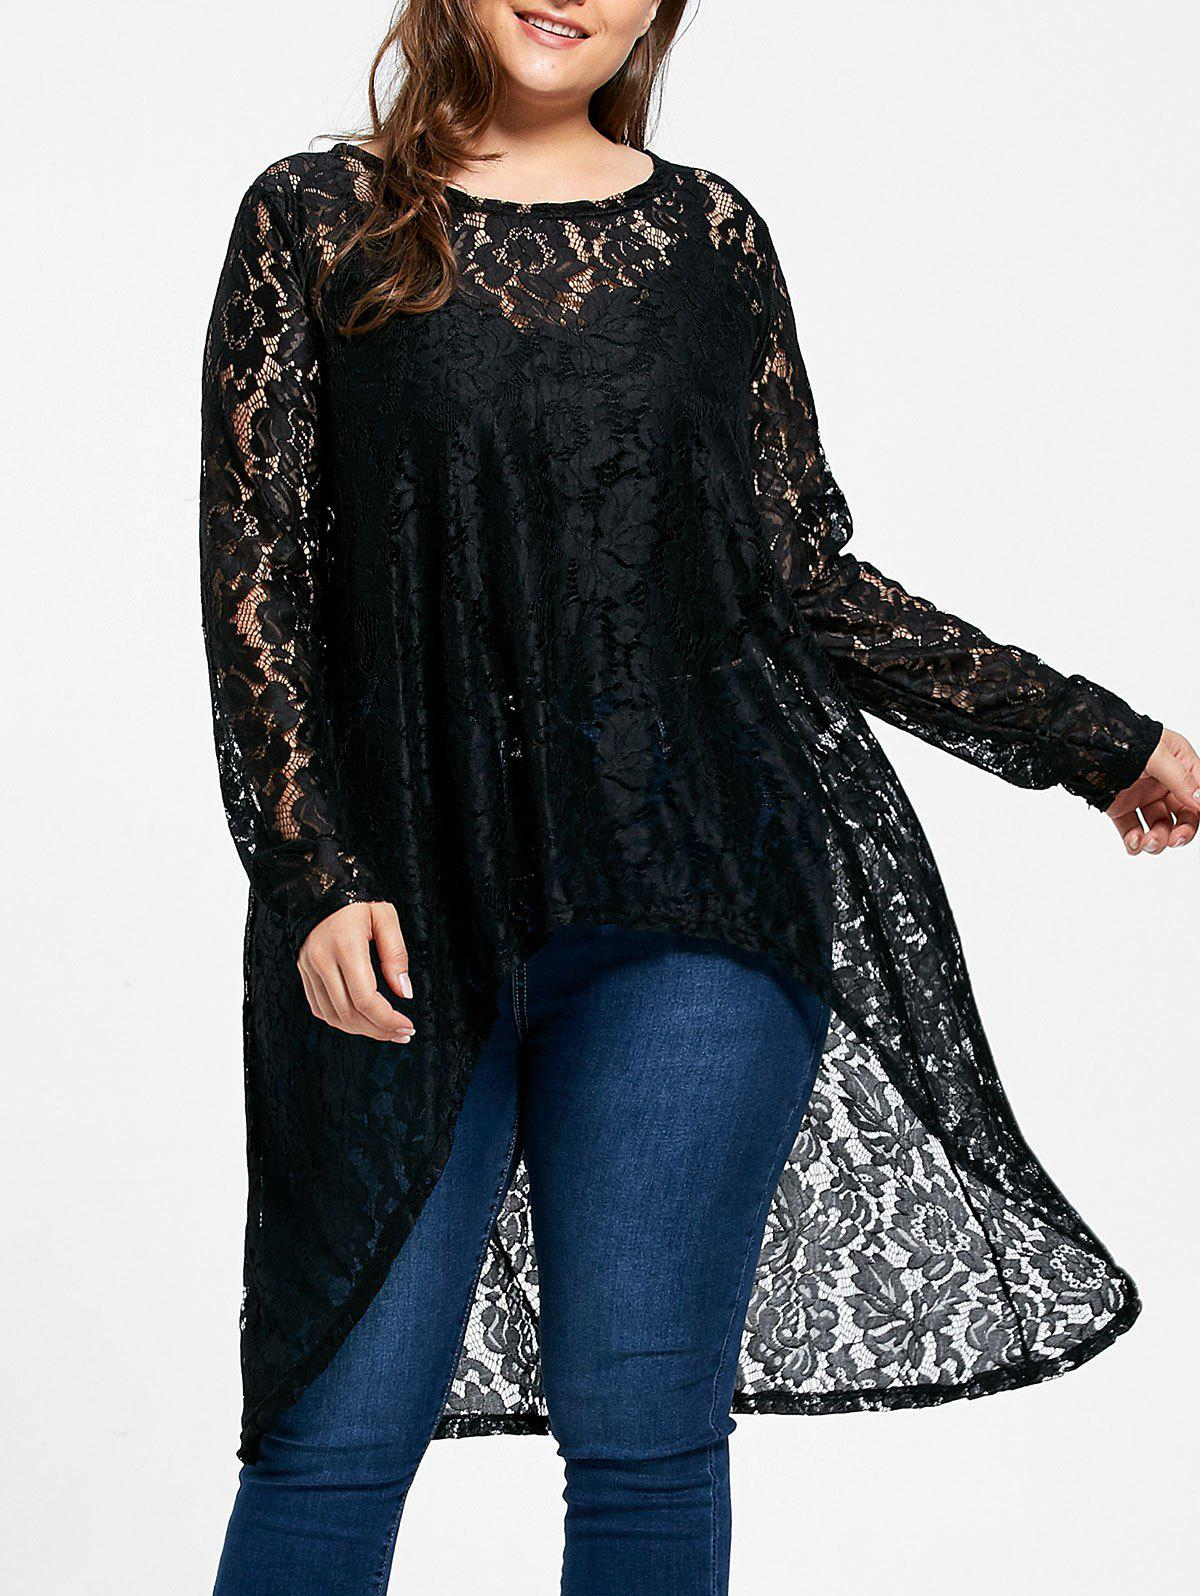 Sheer Plus  Size High Low Flower Lace Blouse plus size printed sheer lace blouse with cami top